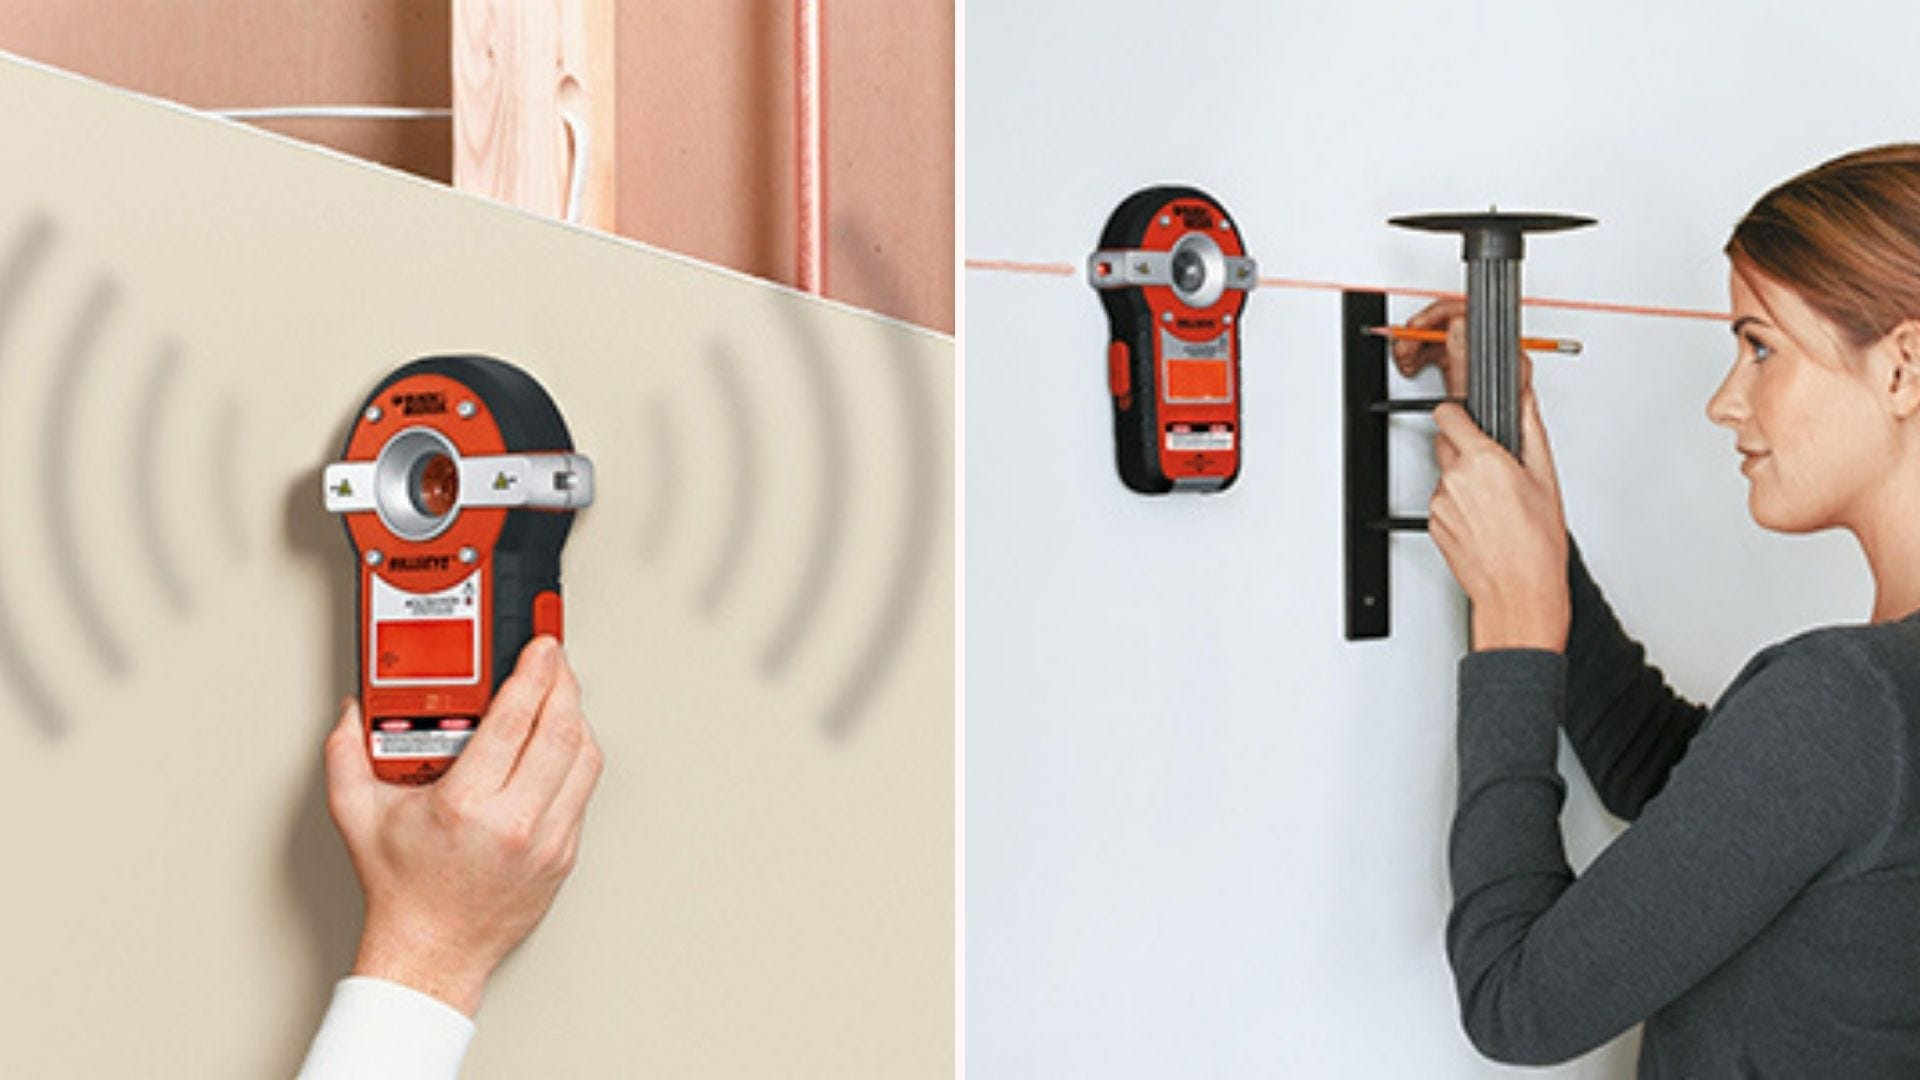 On the left, a black and orange stud finder alerts its user of a stud behind the wall. On the right, a woman marks the positioning of the stud while using the device's laser level feature.